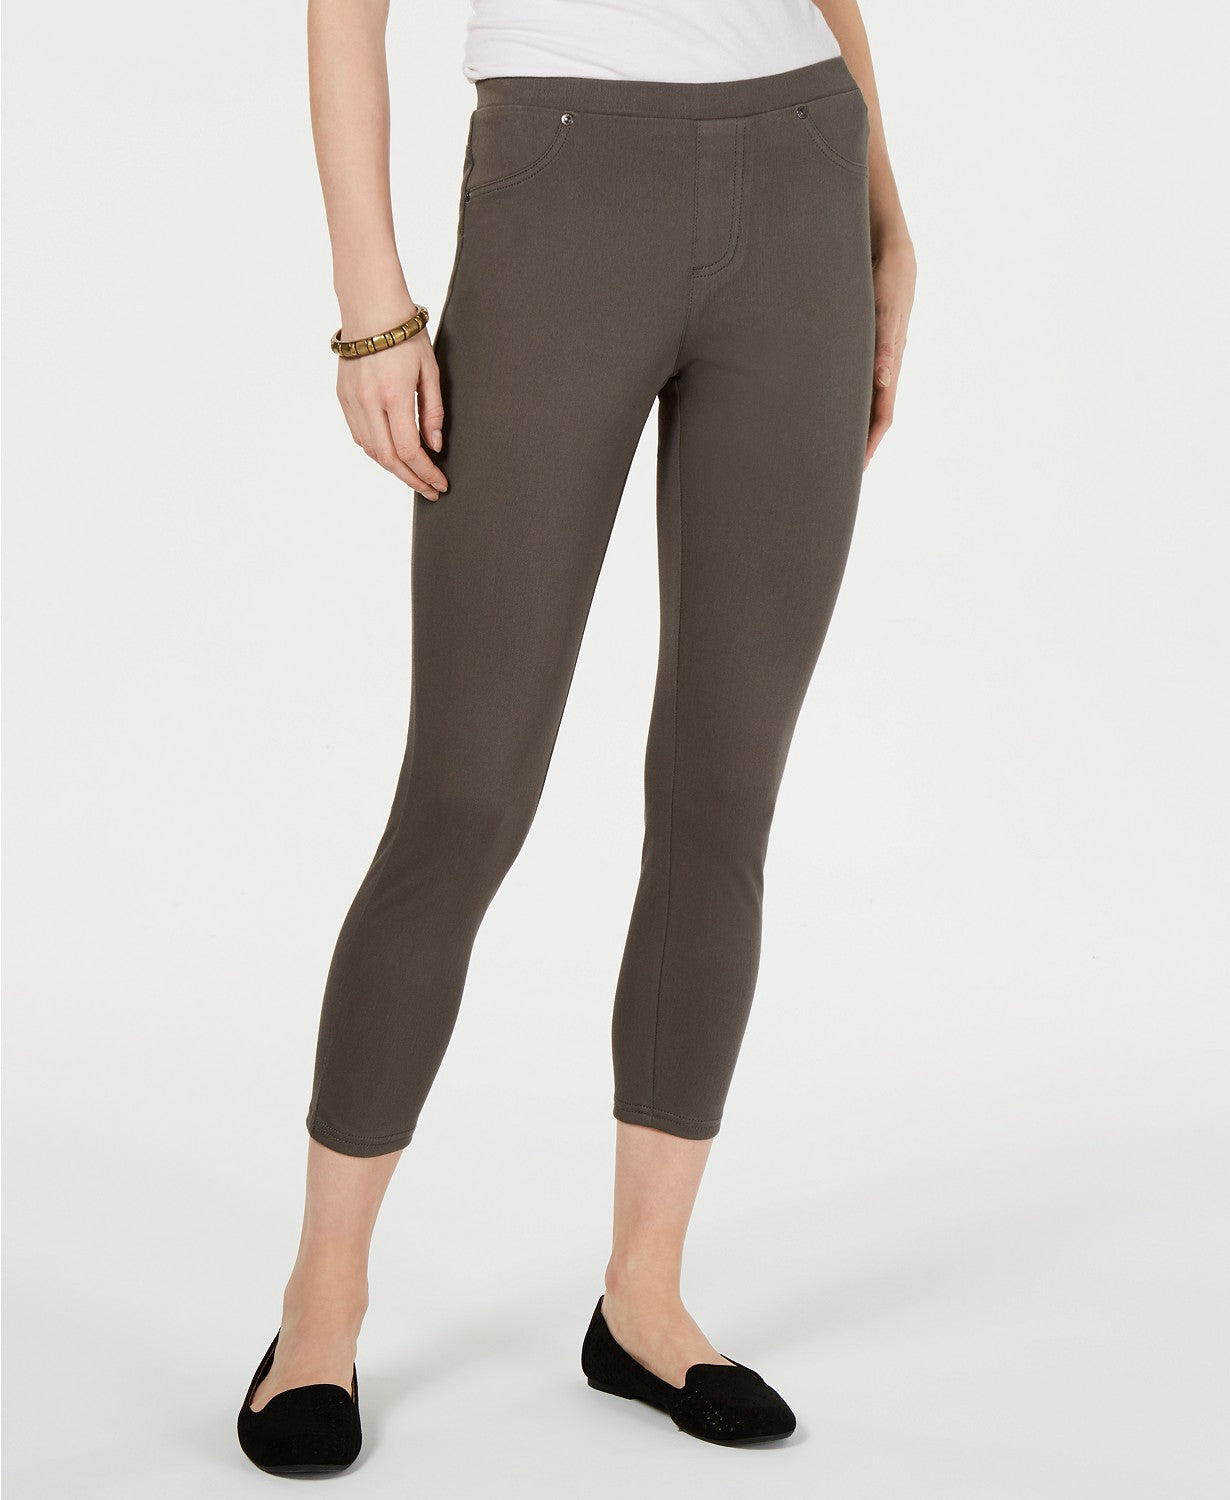 Style & Co Twill Capri Leggings